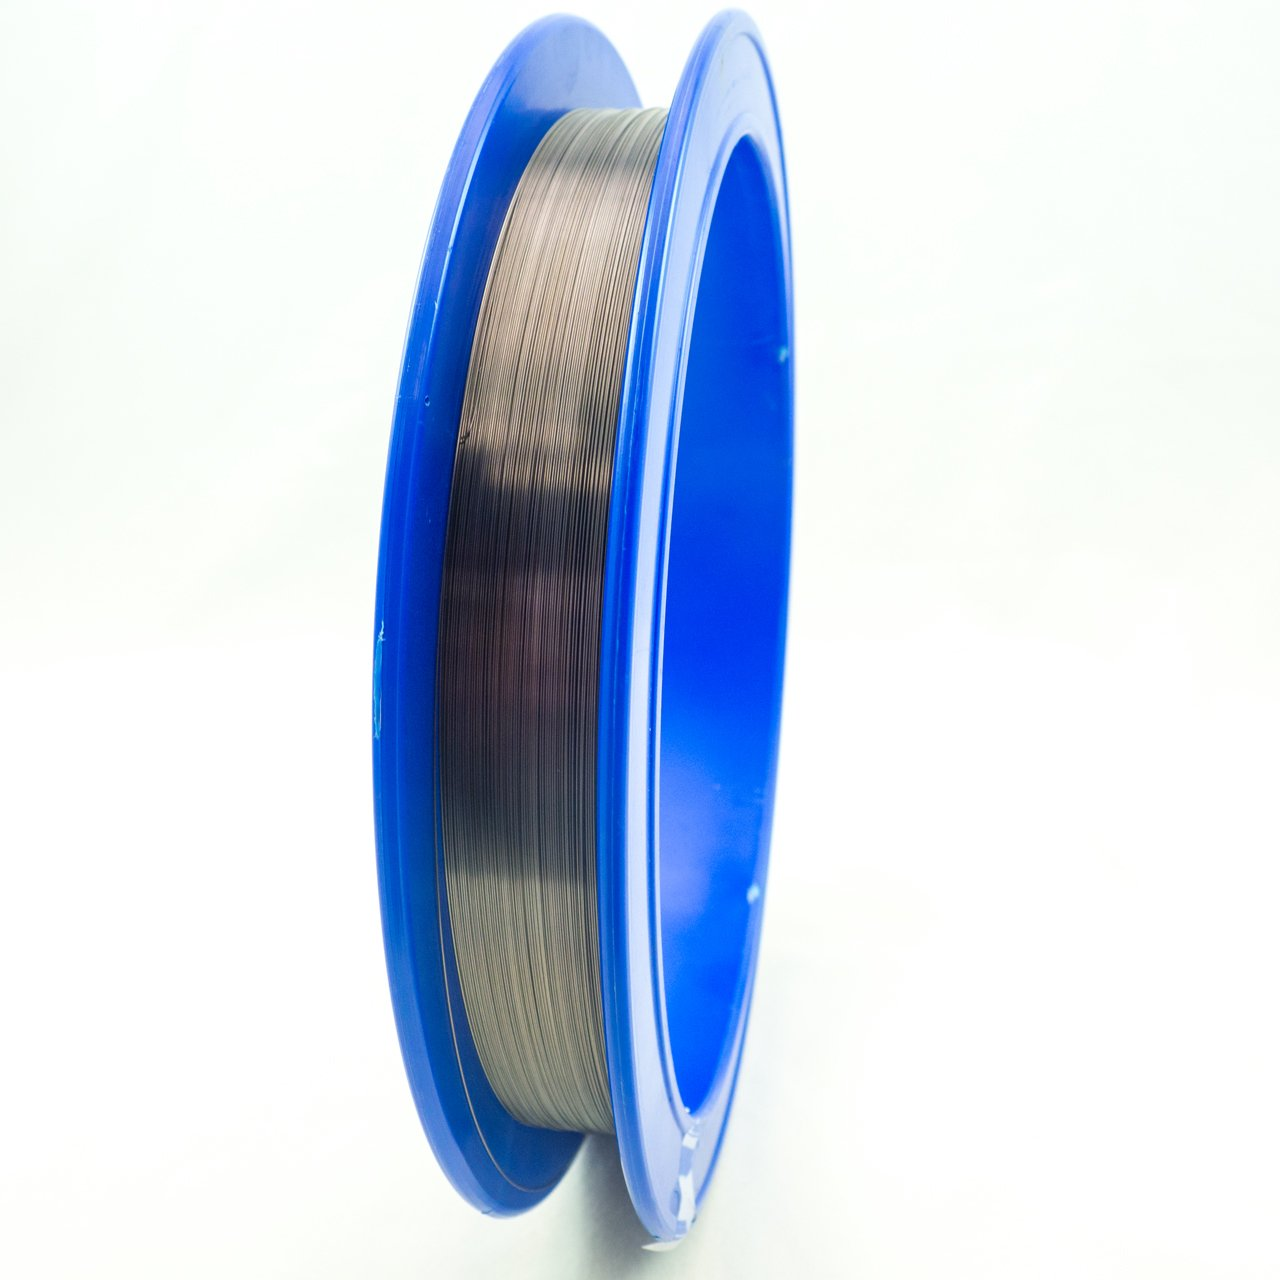 ORTFE235 Number 235 Standard Teflon O-Ring 3-3//8 OD 3-1//8 ID 3-3//8 OD Sur-Seal STCC Sterling Seal and Supply Outstanding Weather Resistance Polytetrafluoro-Ethylene 3-1//8 ID